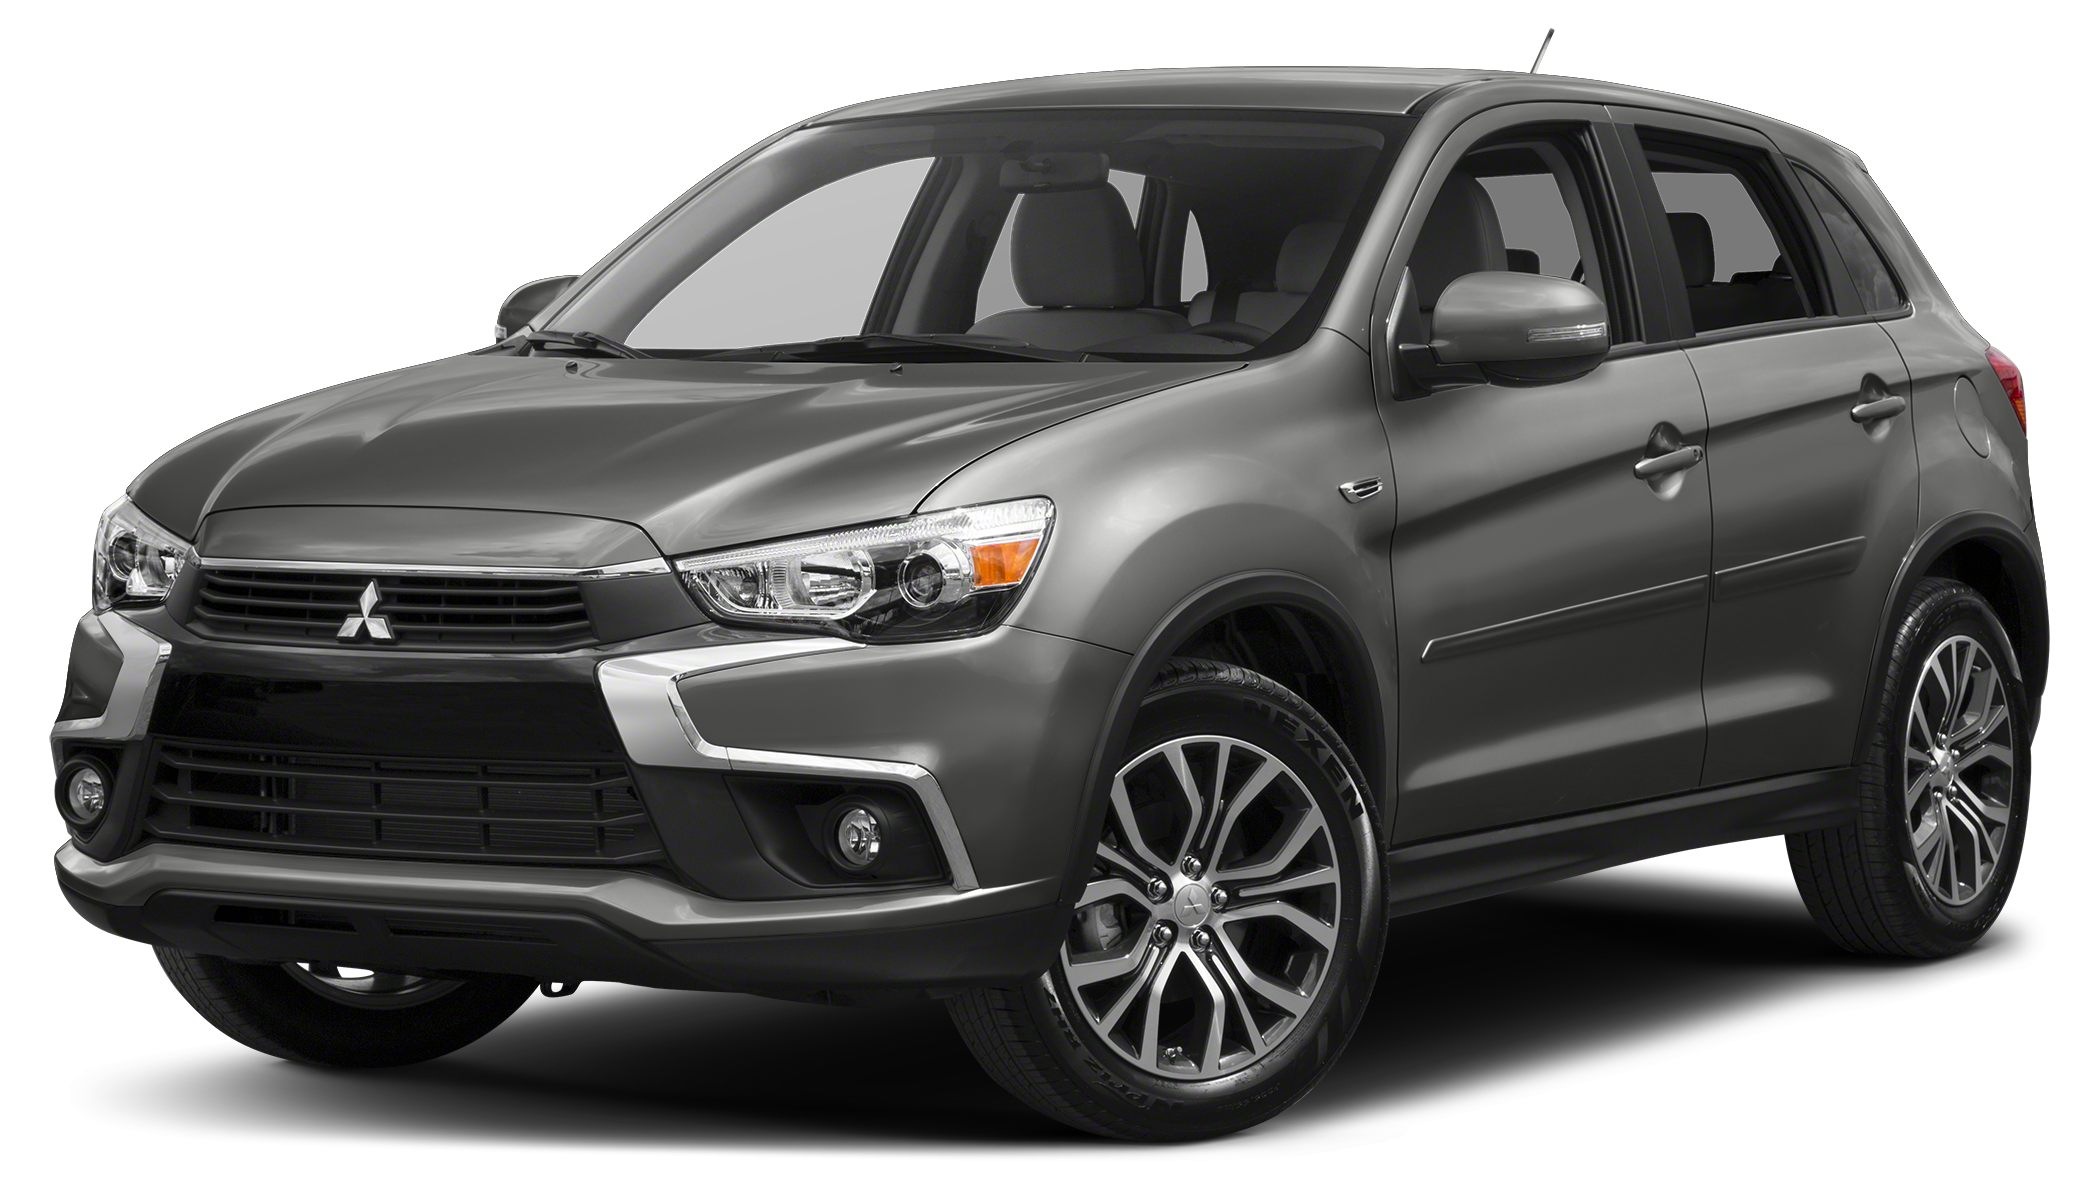 2017 Mitsubishi Outlander Sport 20 ES Miles 0Color Mercury Gray Metallic Stock V17099 VIN J